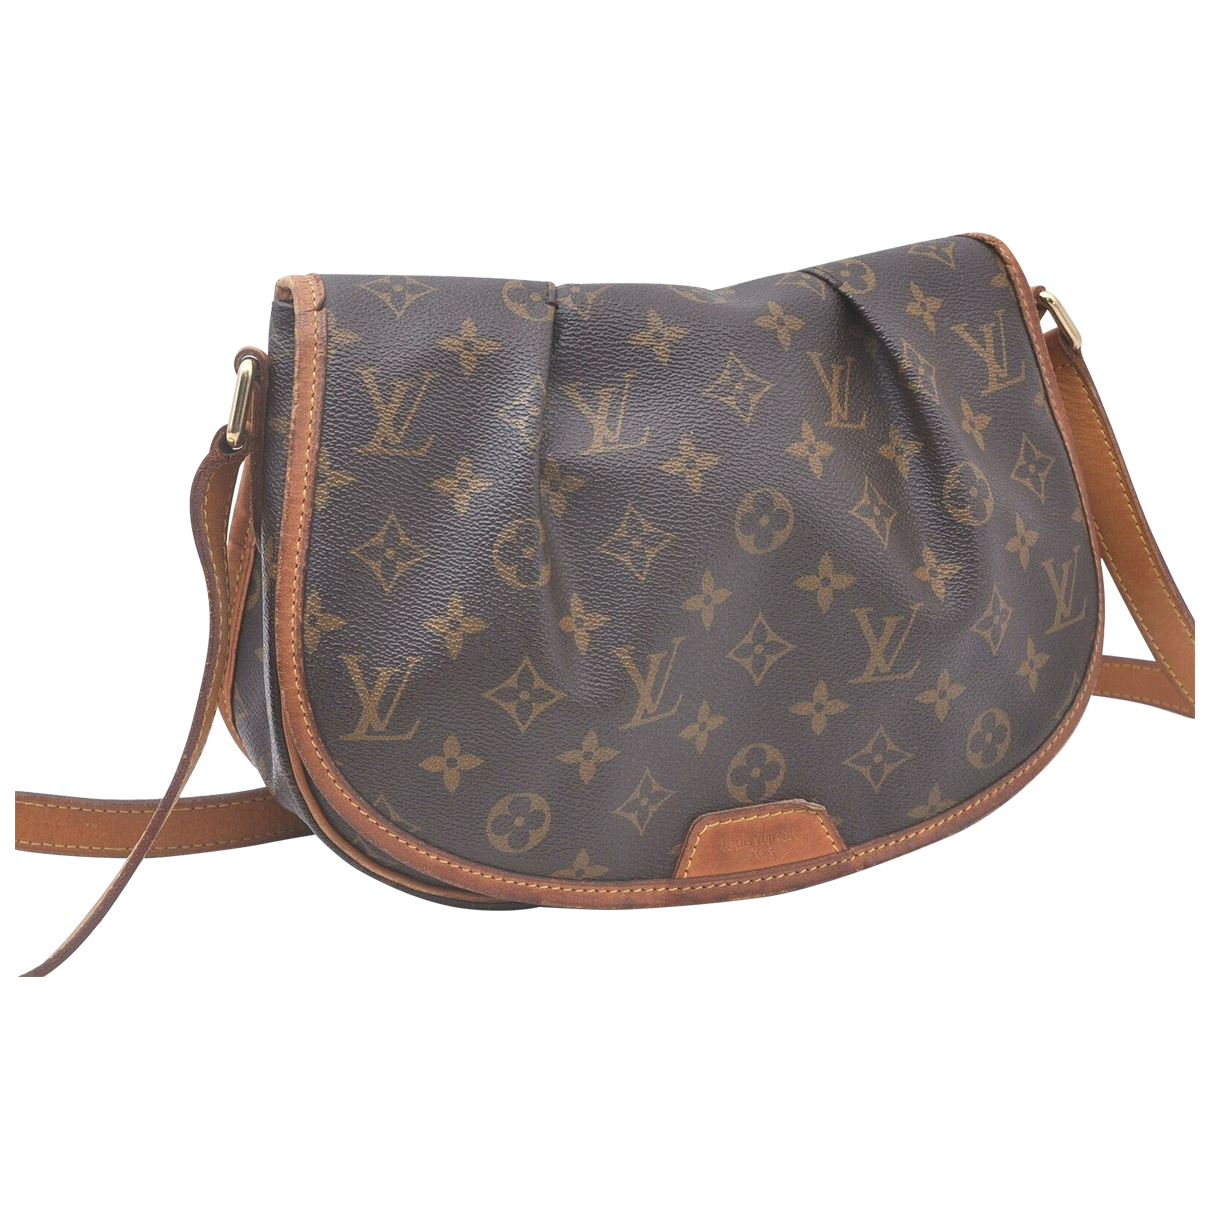 Louis Vuitton \N Handtasche in  Braun Leinen